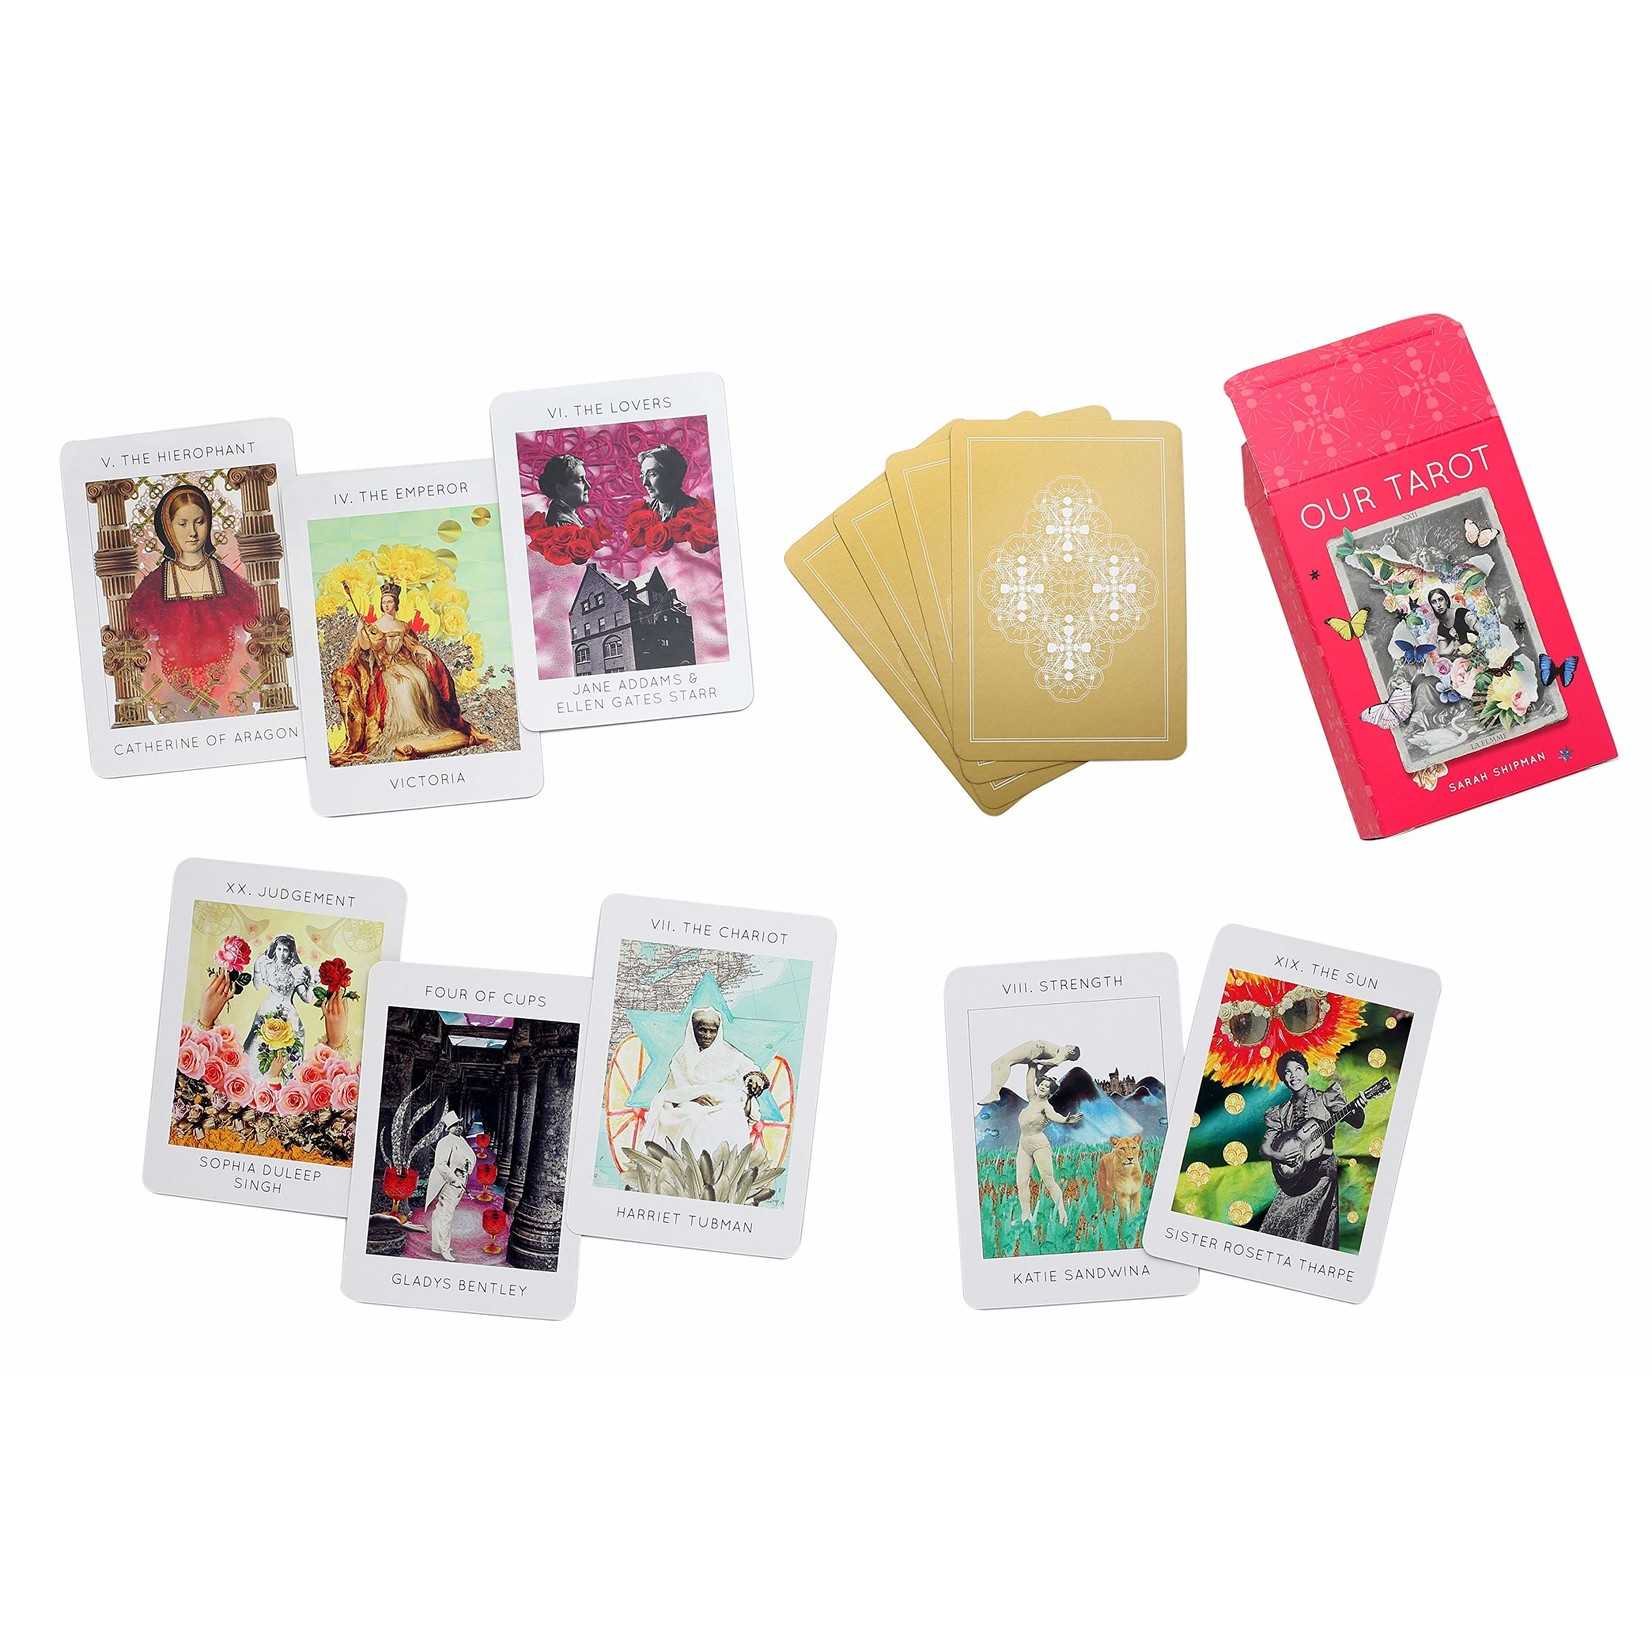 Our Tarot: Deck and Guidebook